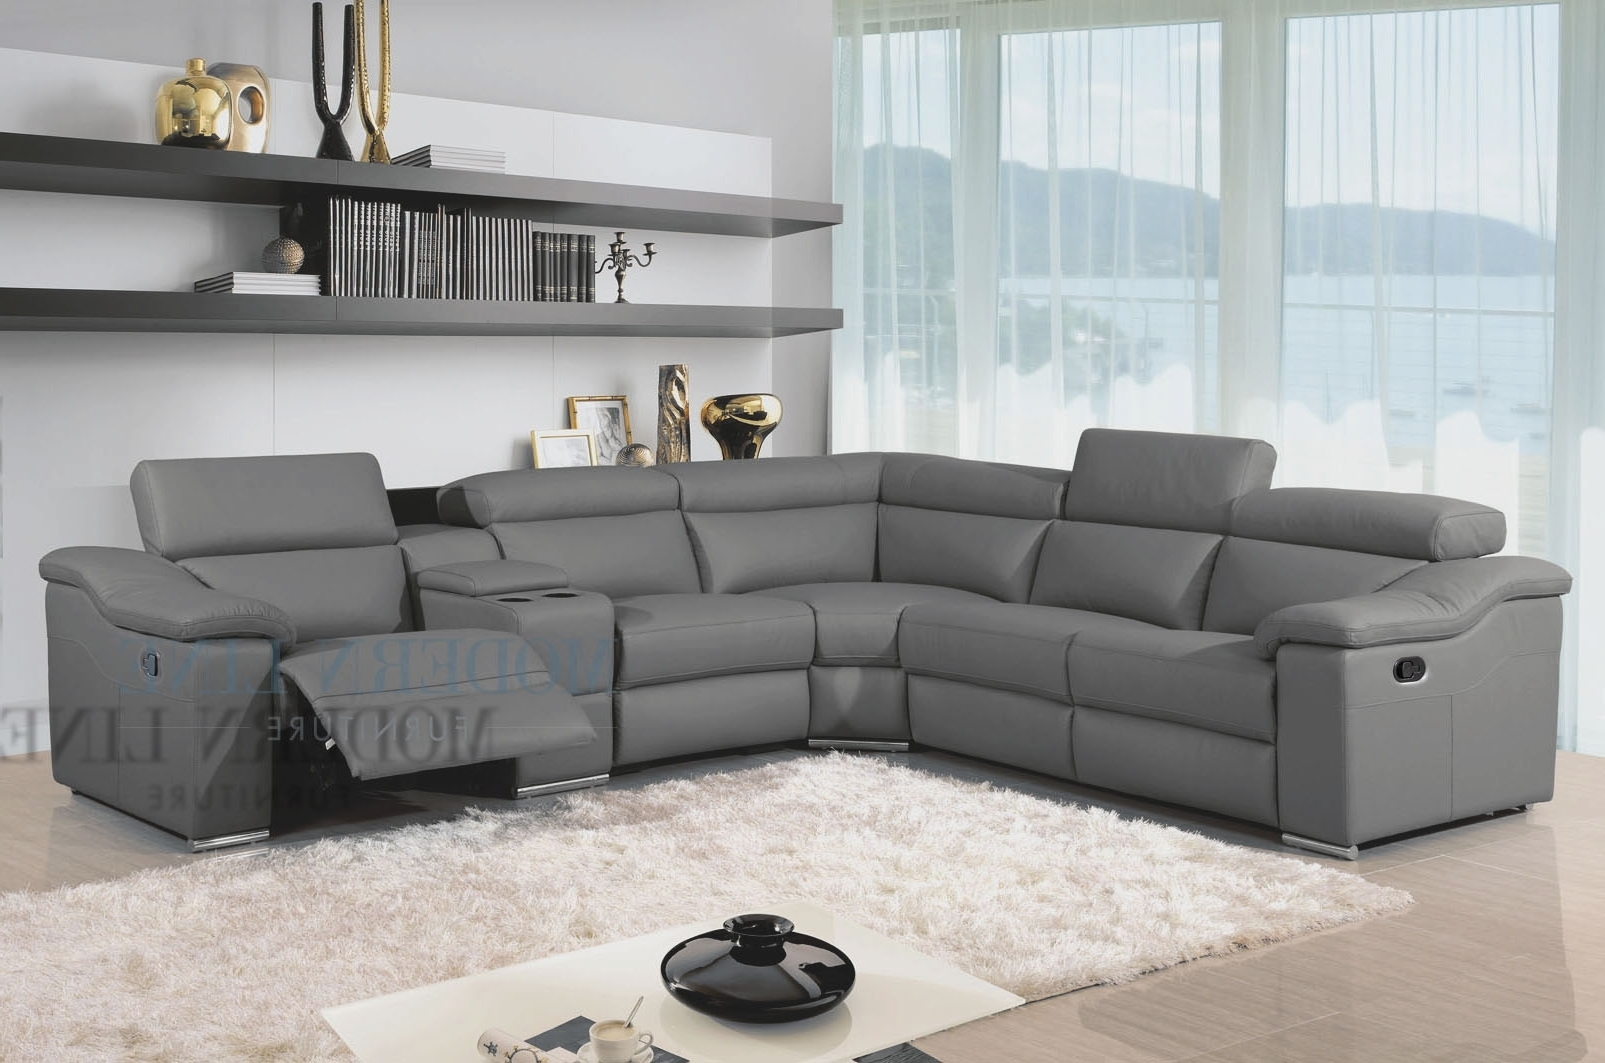 Vancouver Sectional Sofas With Most Current Incredible Modern Sectional Sofas Vancouver – Buildsimplehome (View 5 of 15)